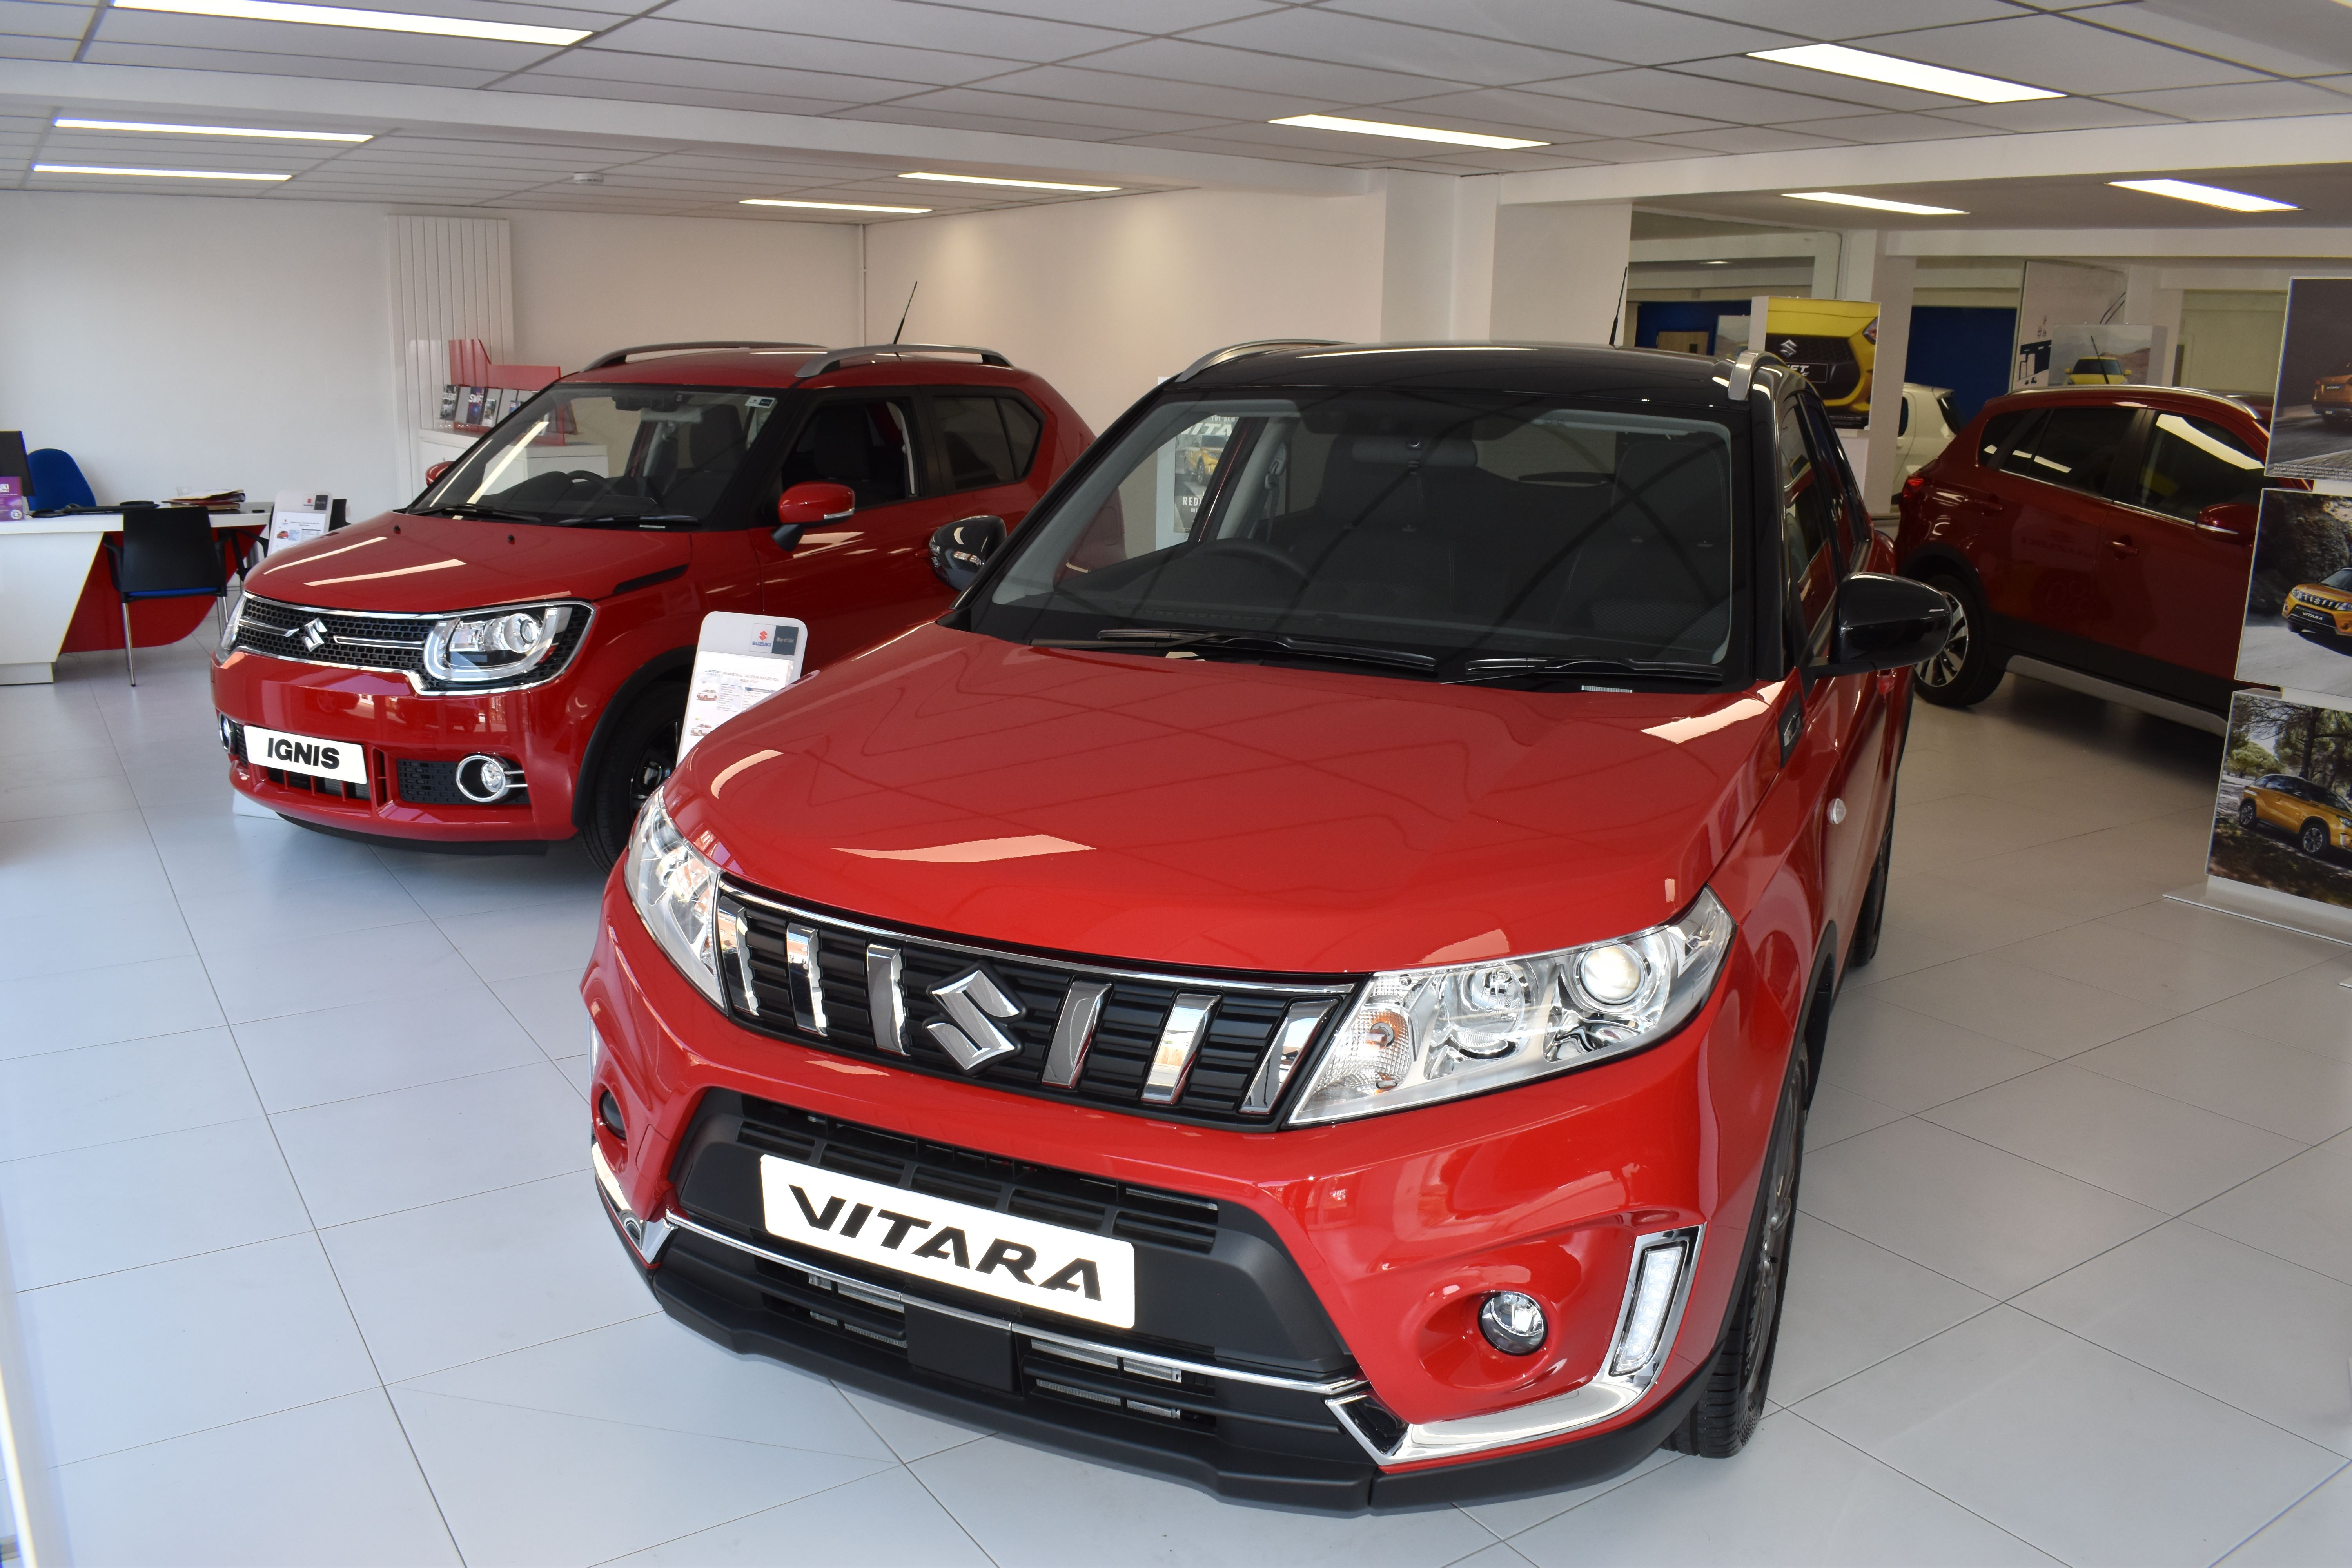 WORLEYS CITROEN OPENS NEW SUZUKI DEALERSHIP IN HIGH WYCOMBE